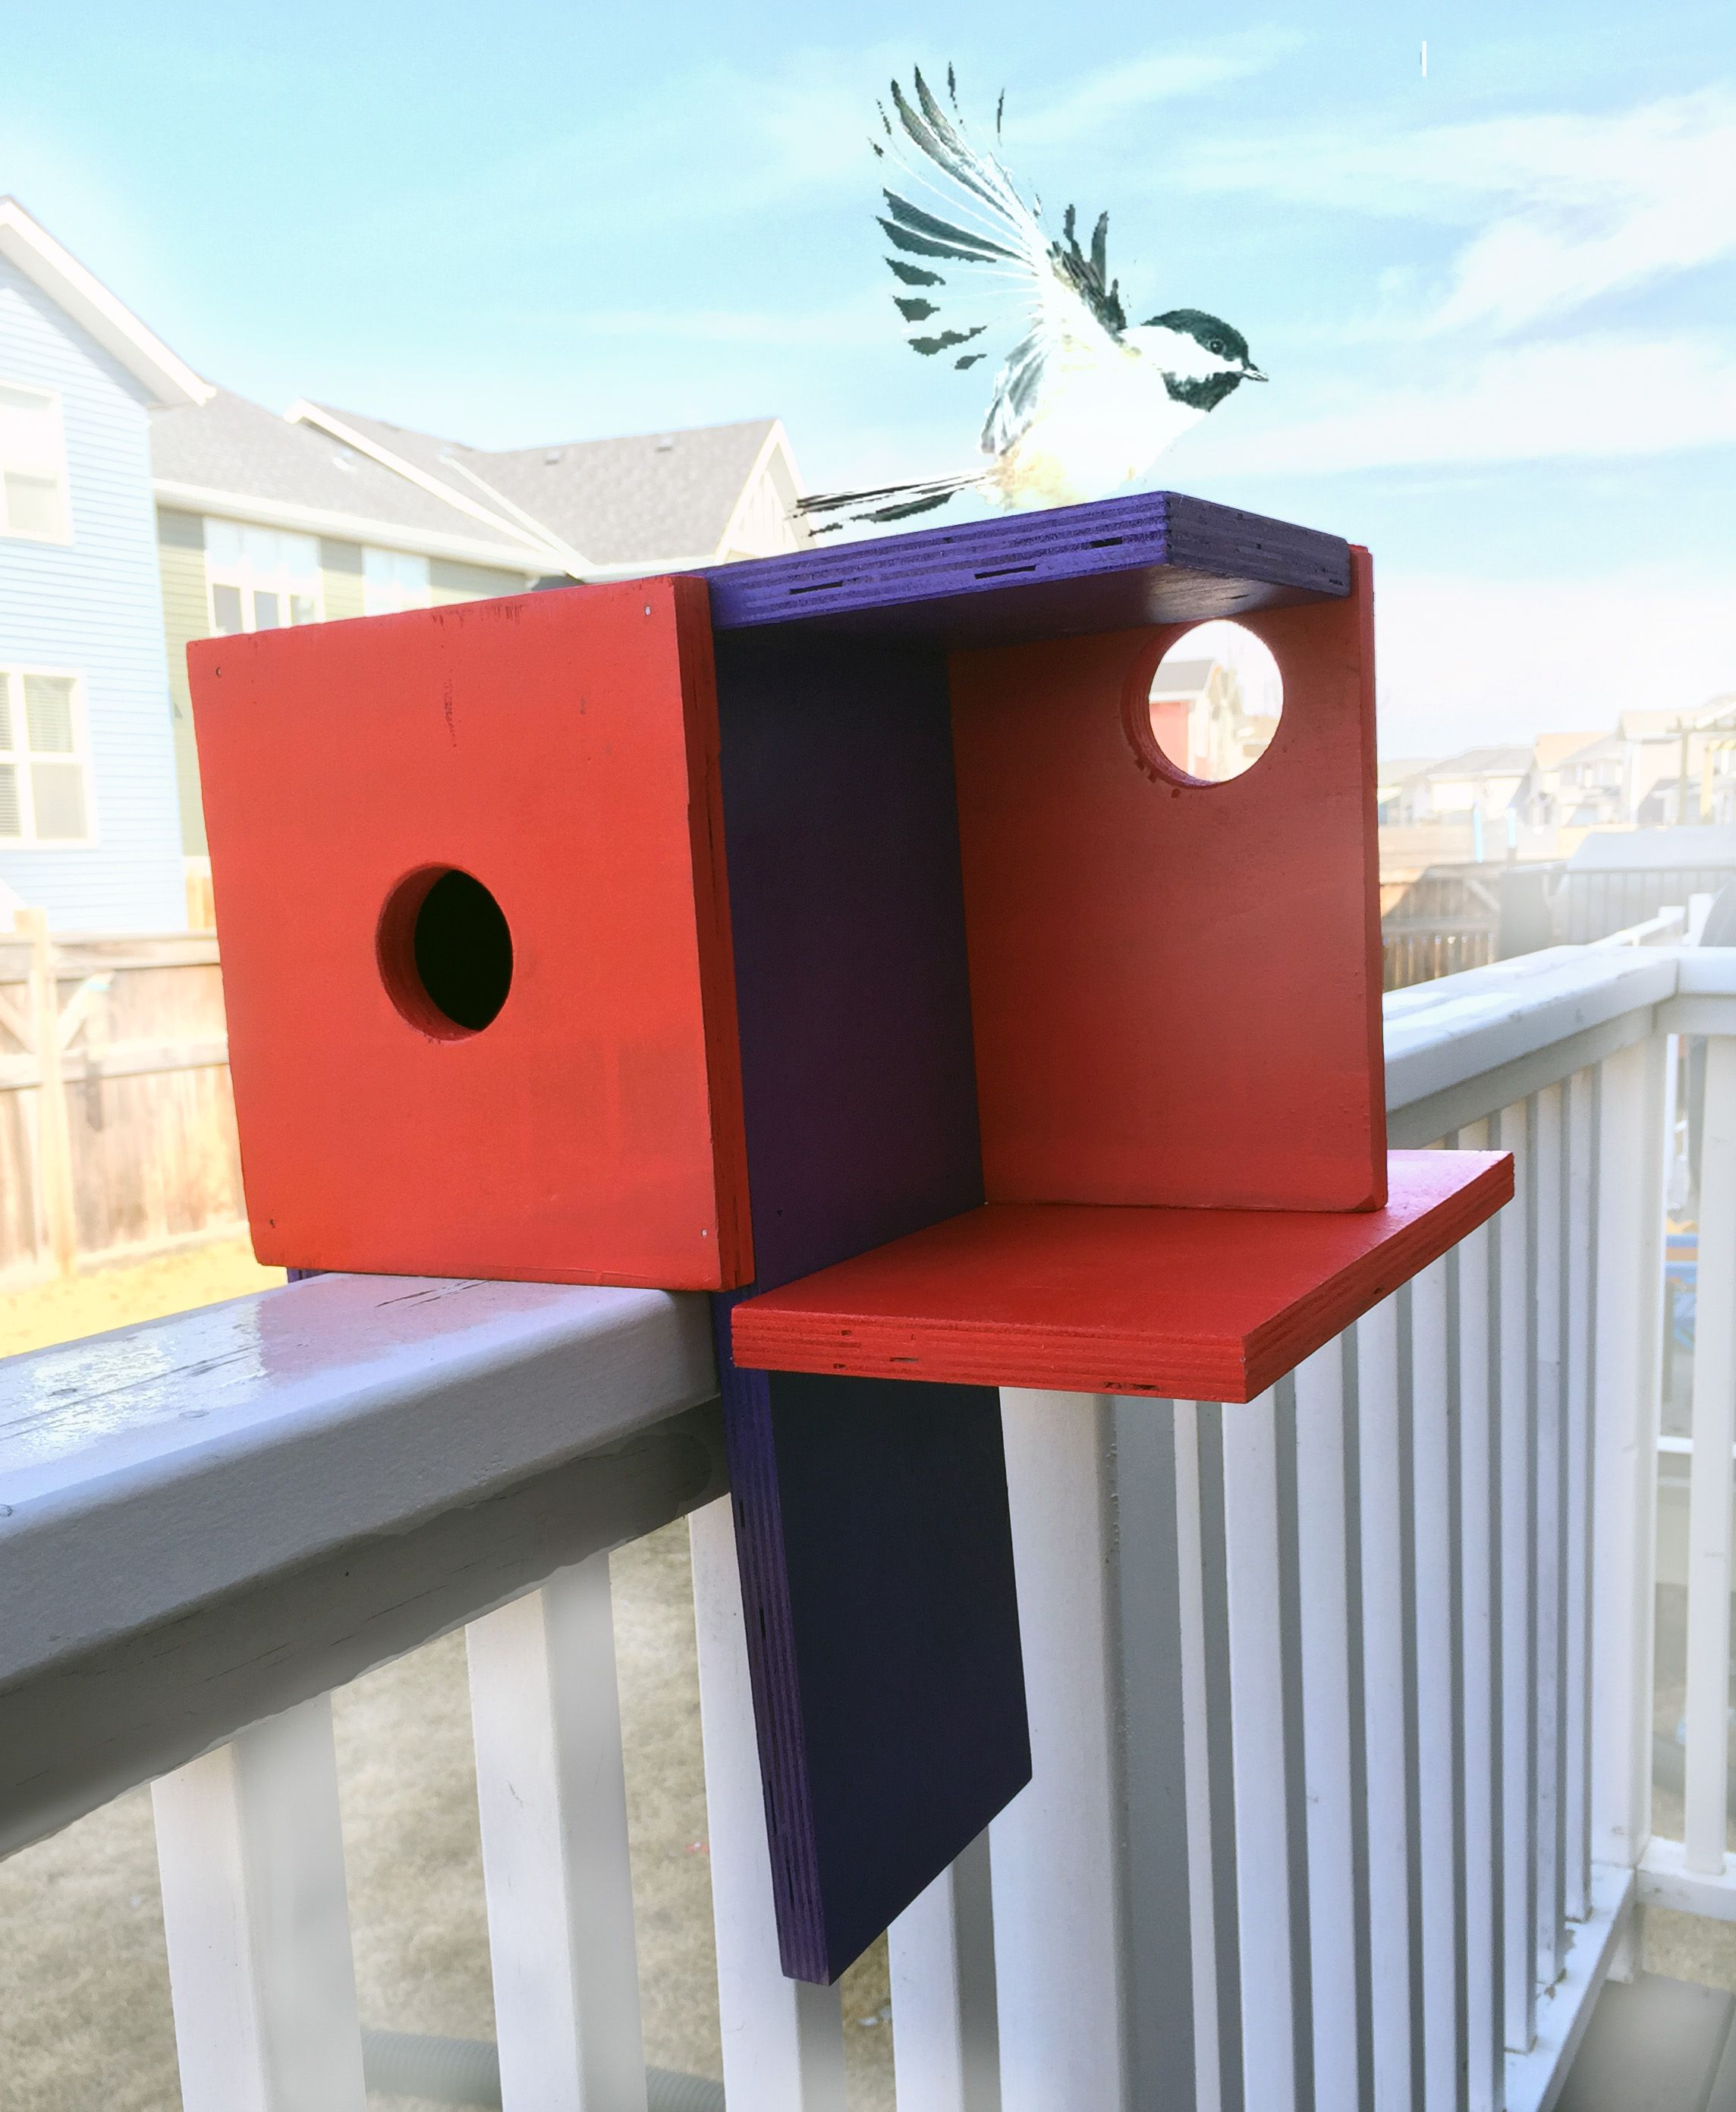 Mondrian Inspired Right Angle Modern Birdhouse Architecture